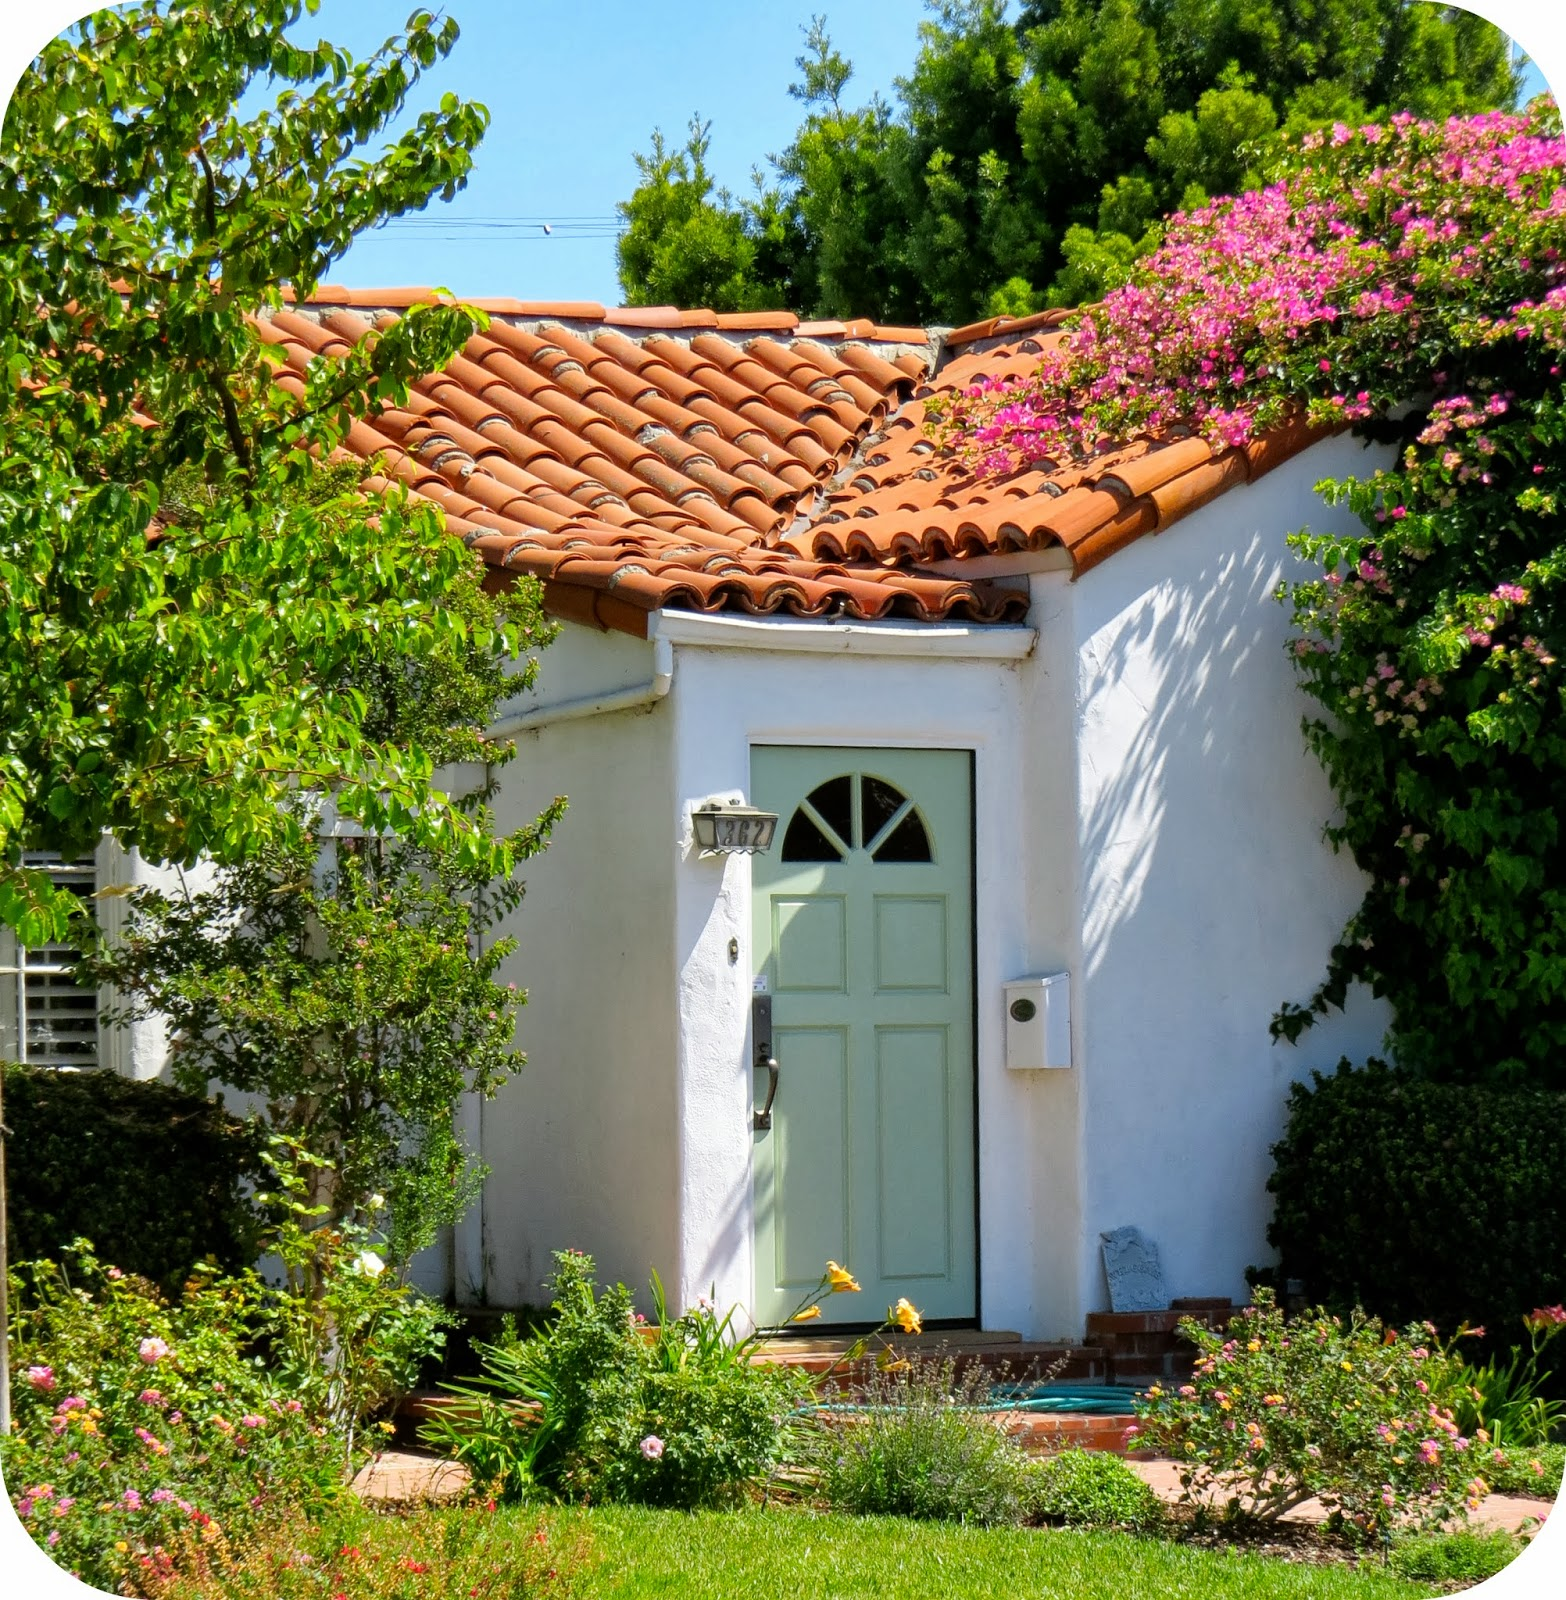 Modern House Red Roof: Art And Sand: Small House Love